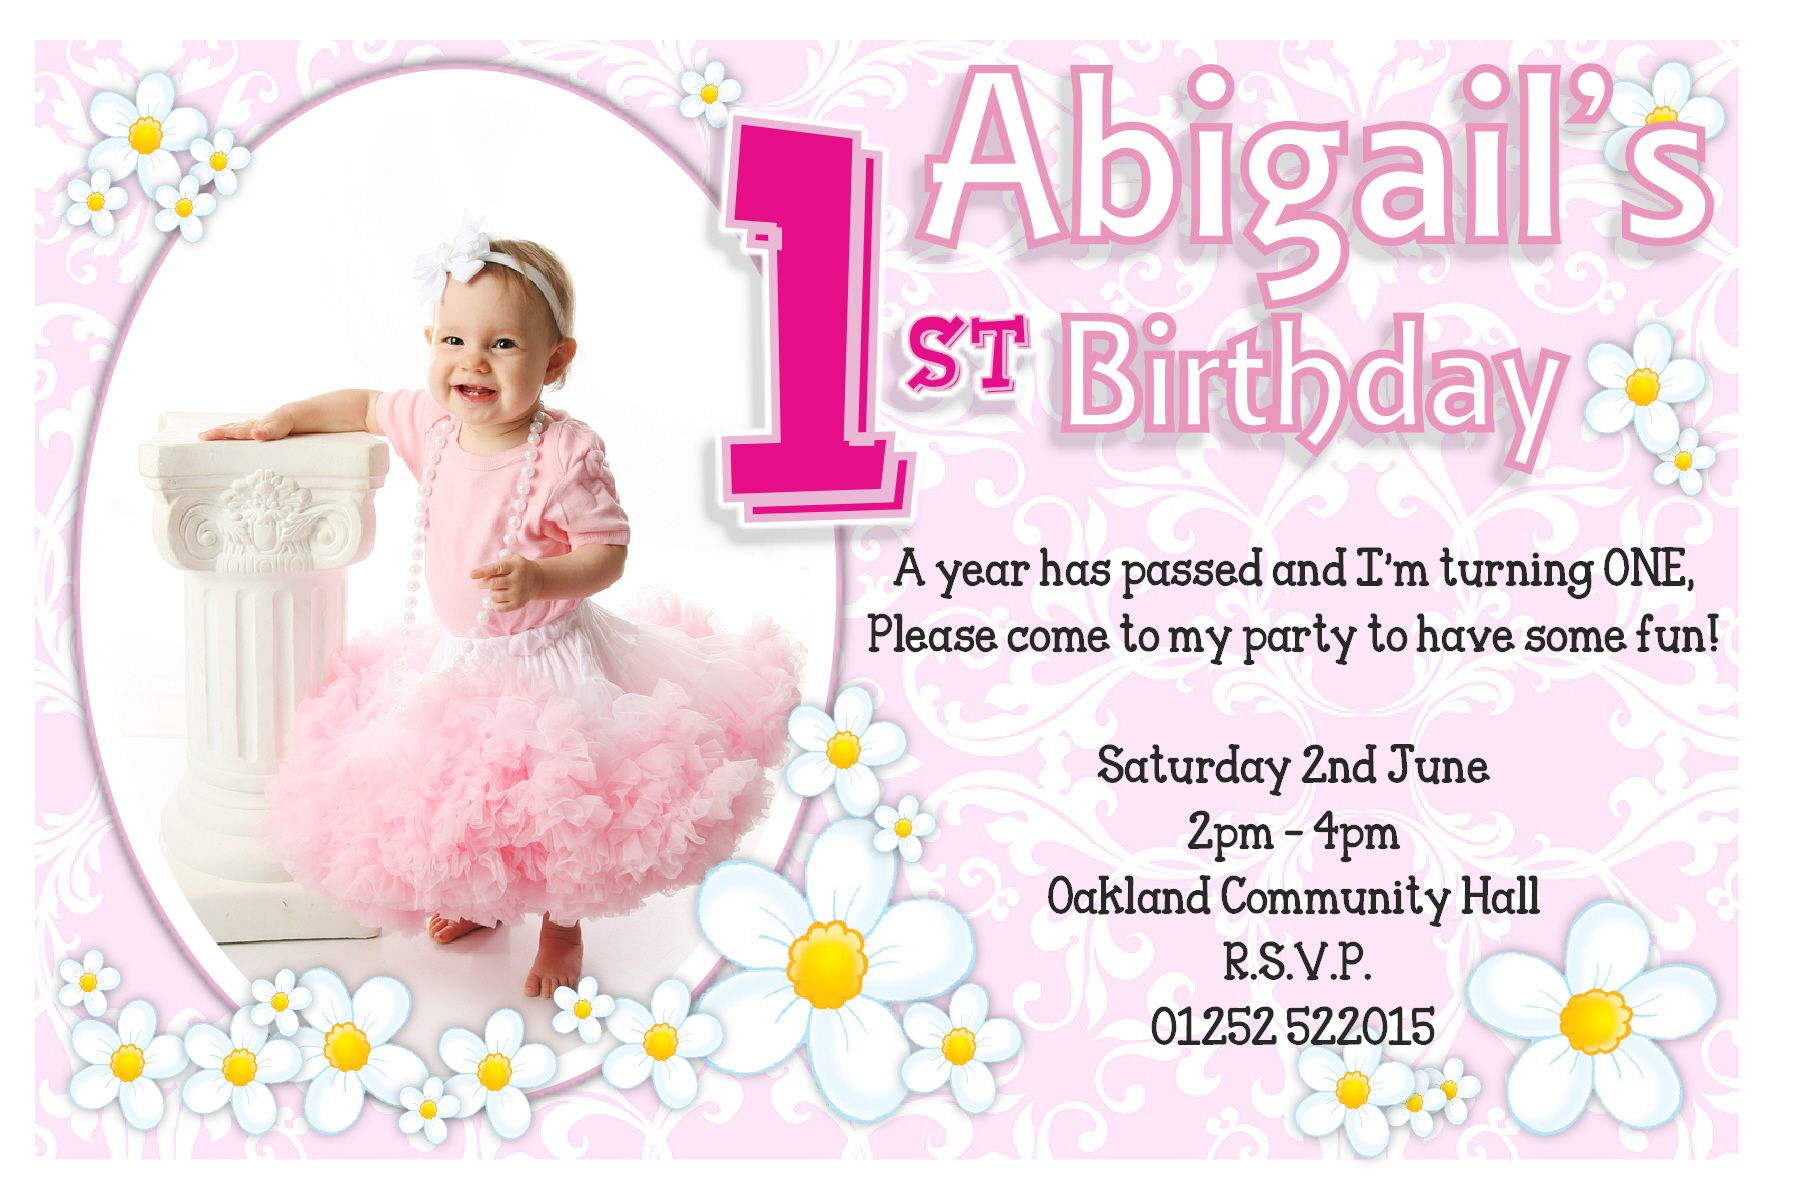 1st birthday evite message ; birthday%2520invitation%2520message%2520for%25201%2520year%2520old%2520;%25201st-birthday-invitations-girl-pumpkin-1